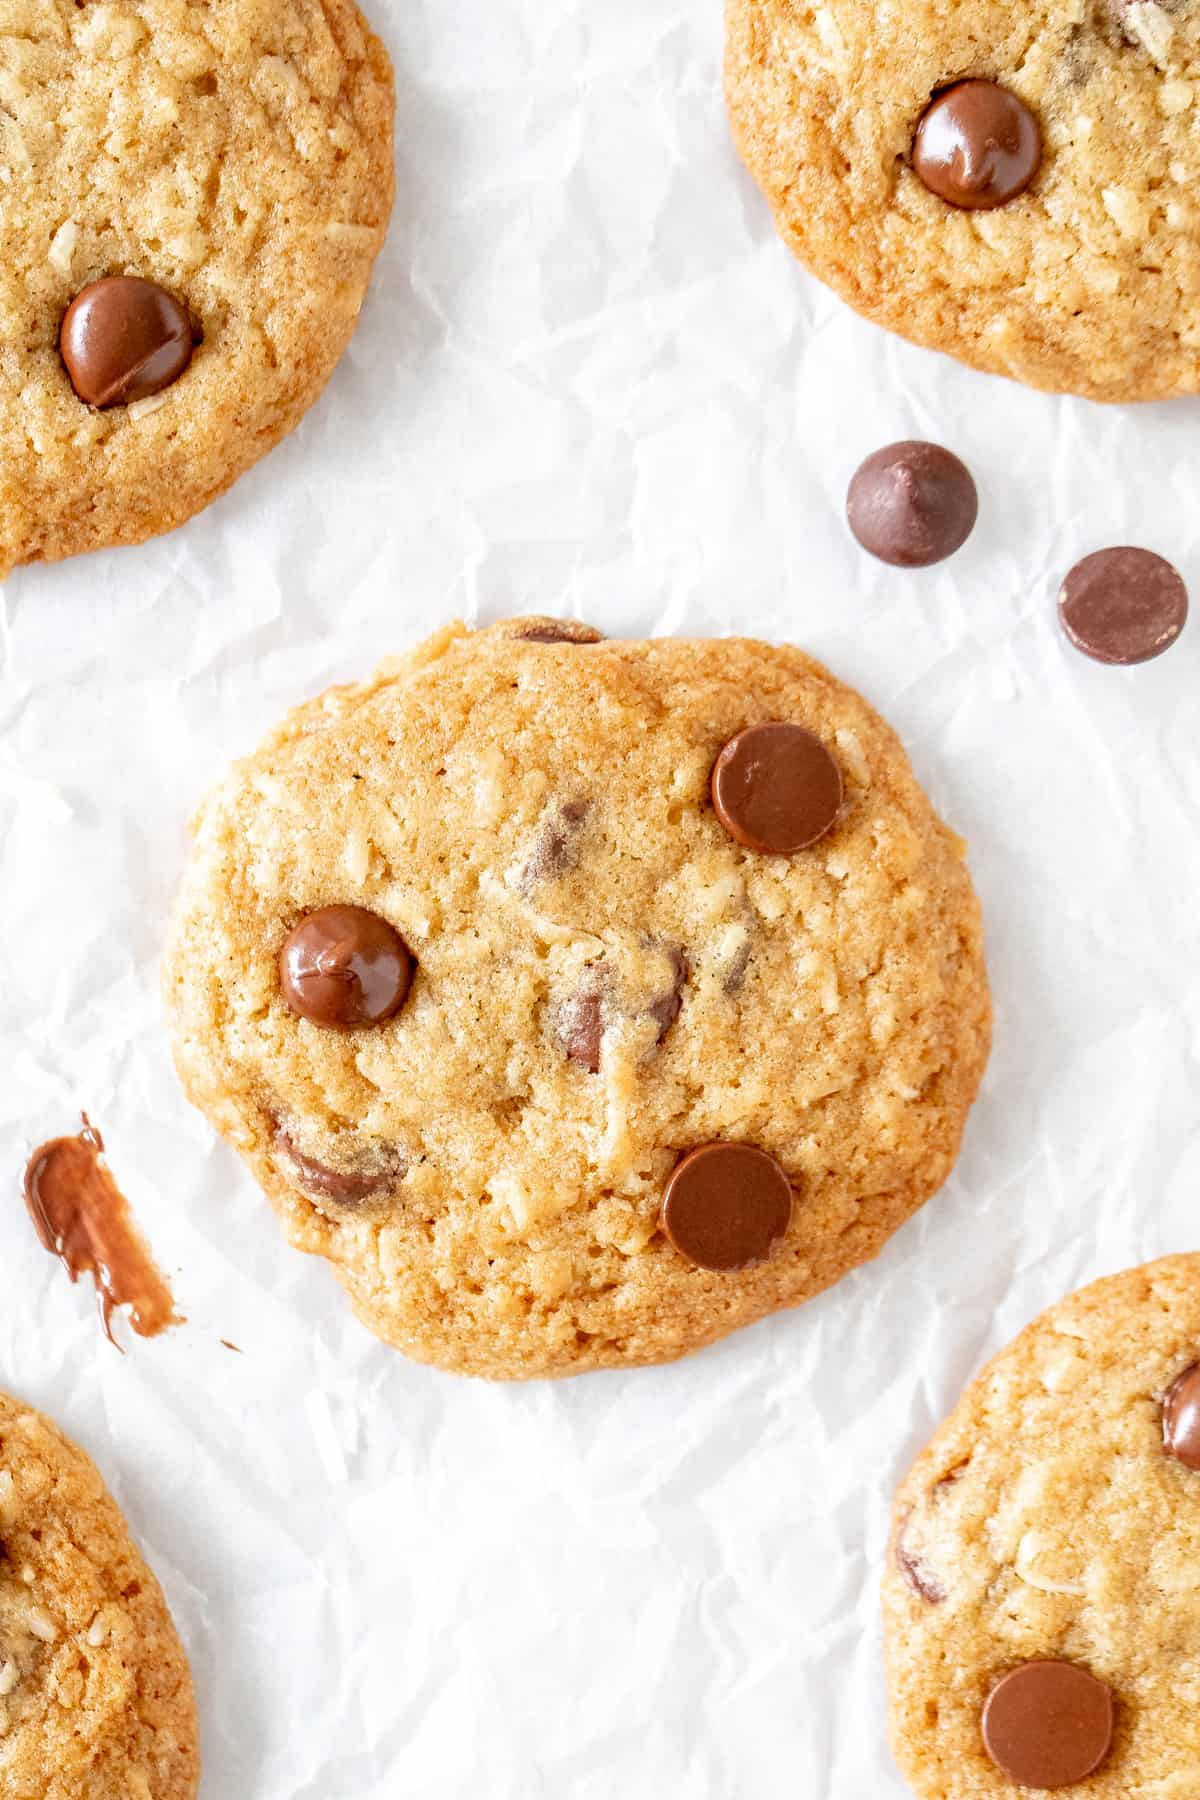 Coconut chocolate chip cookies on parchment paper